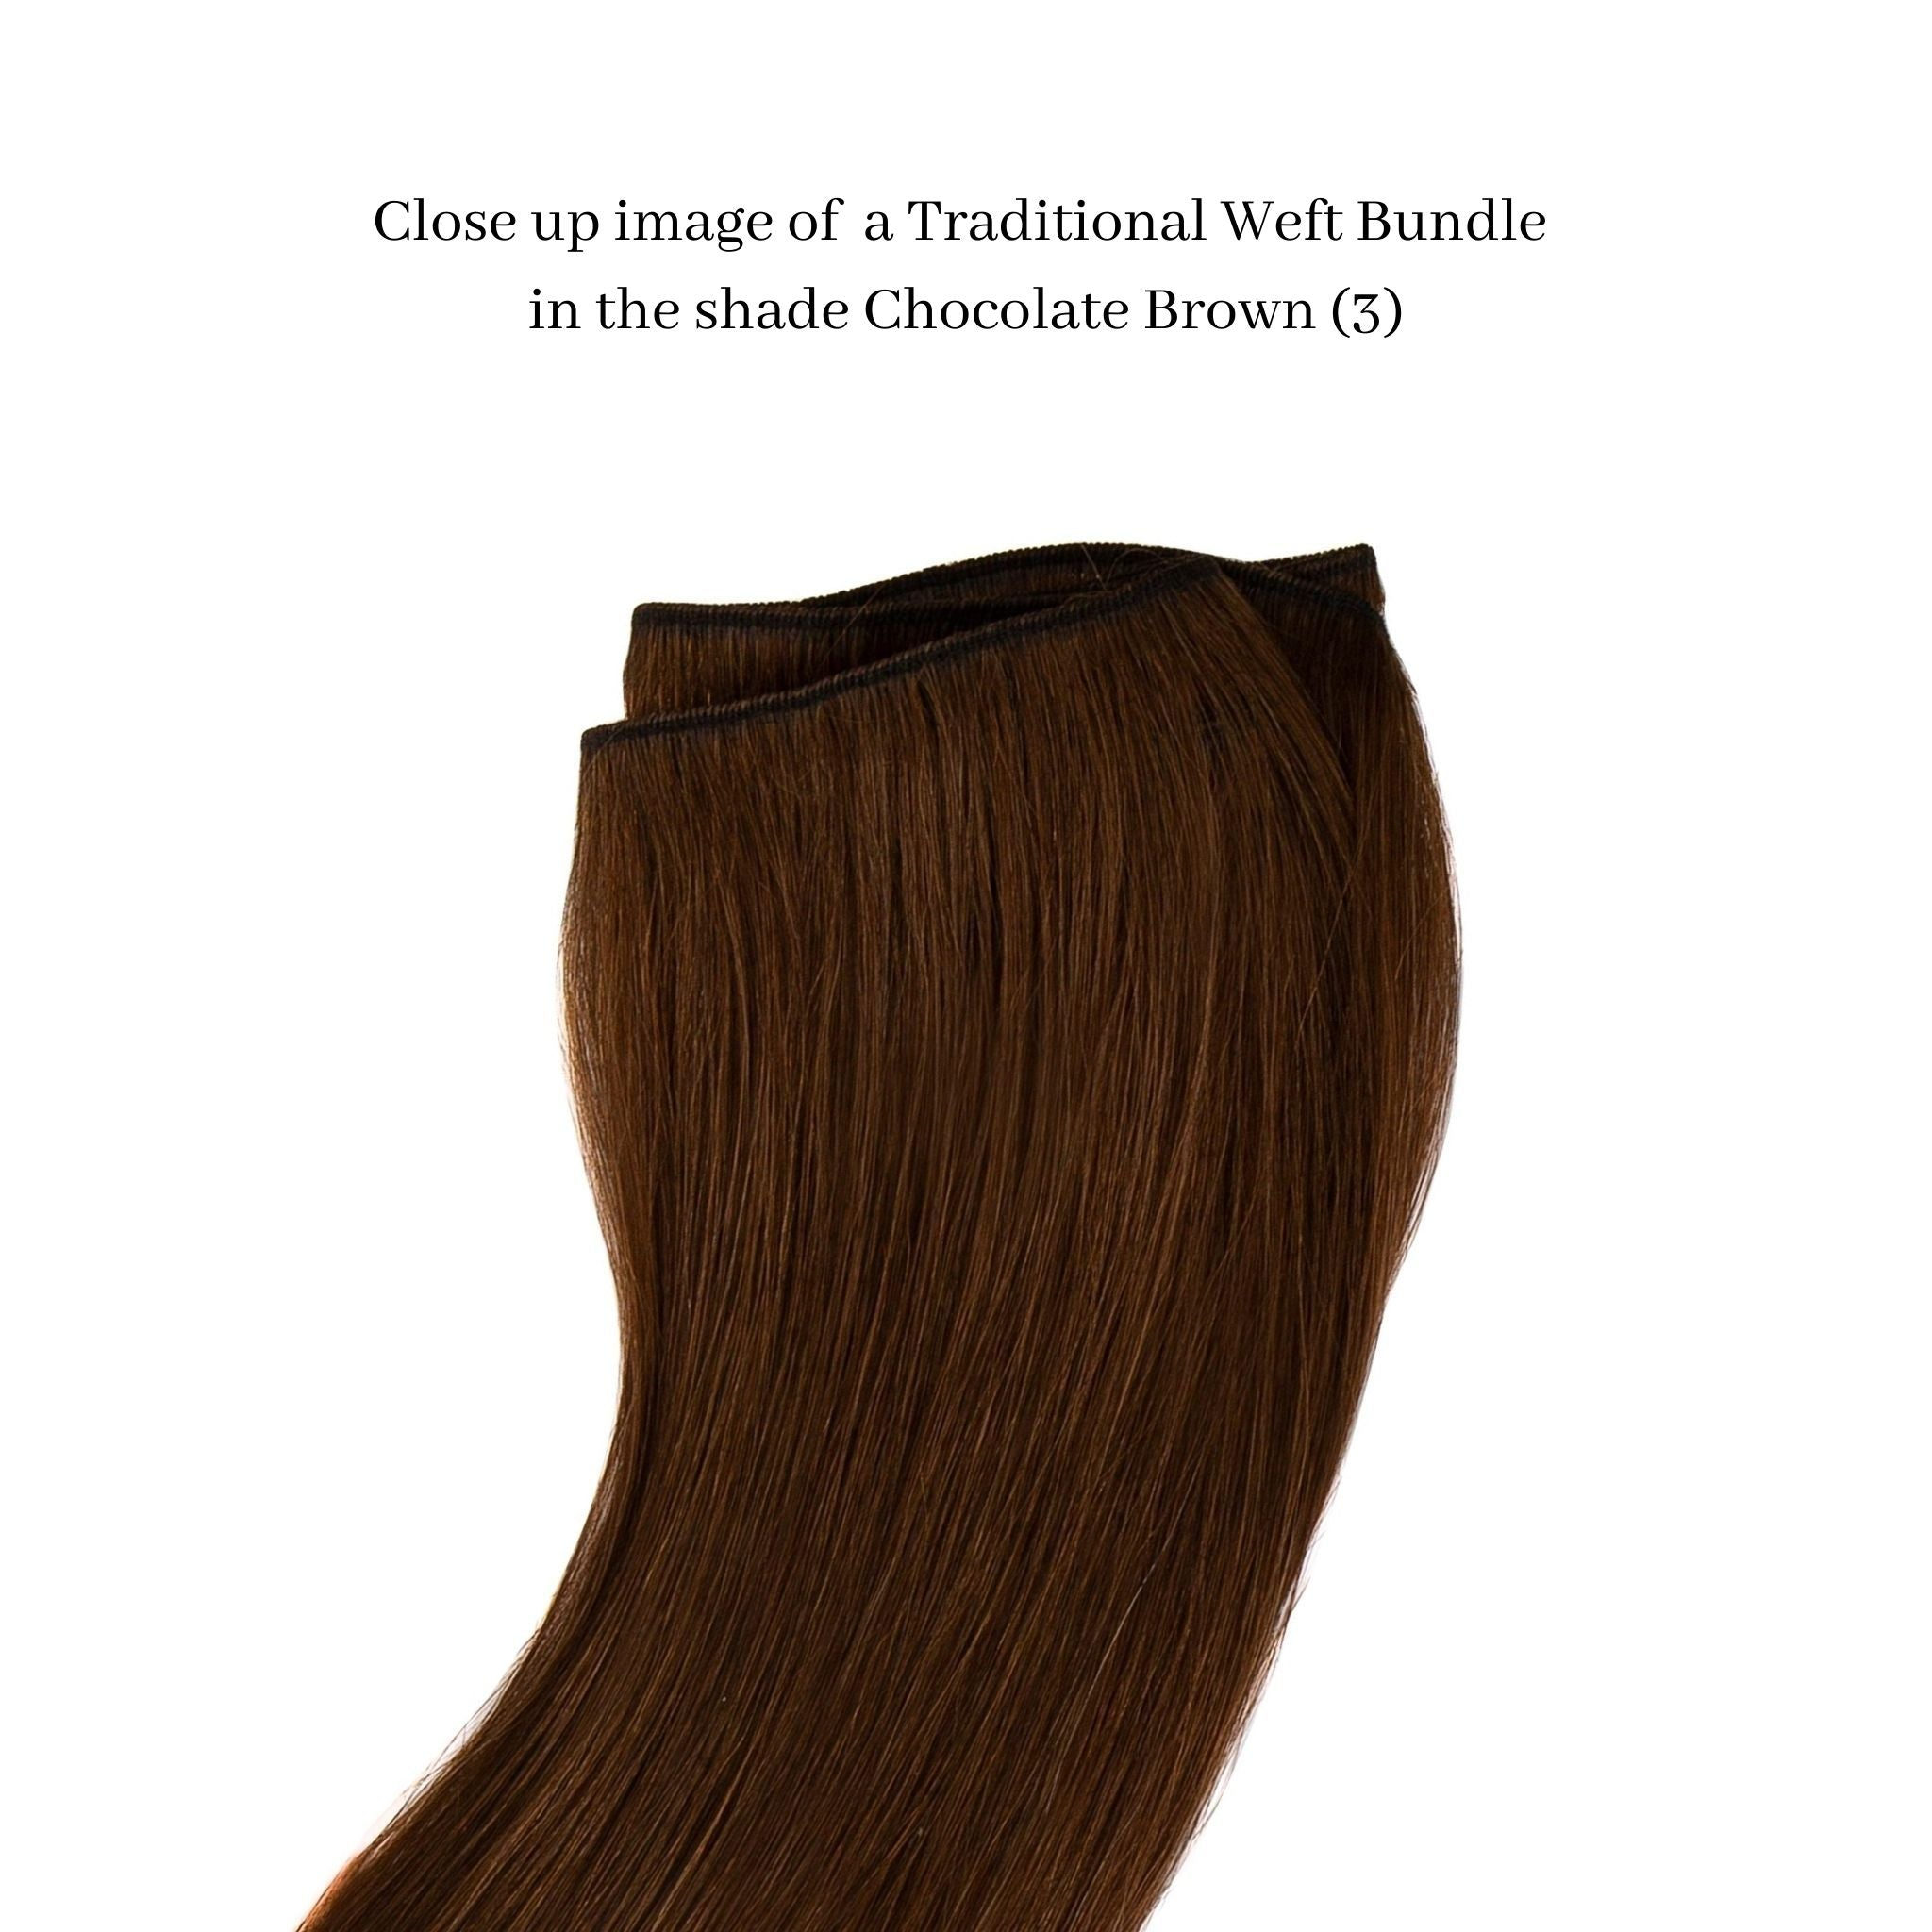 Traditional Weft Bundle